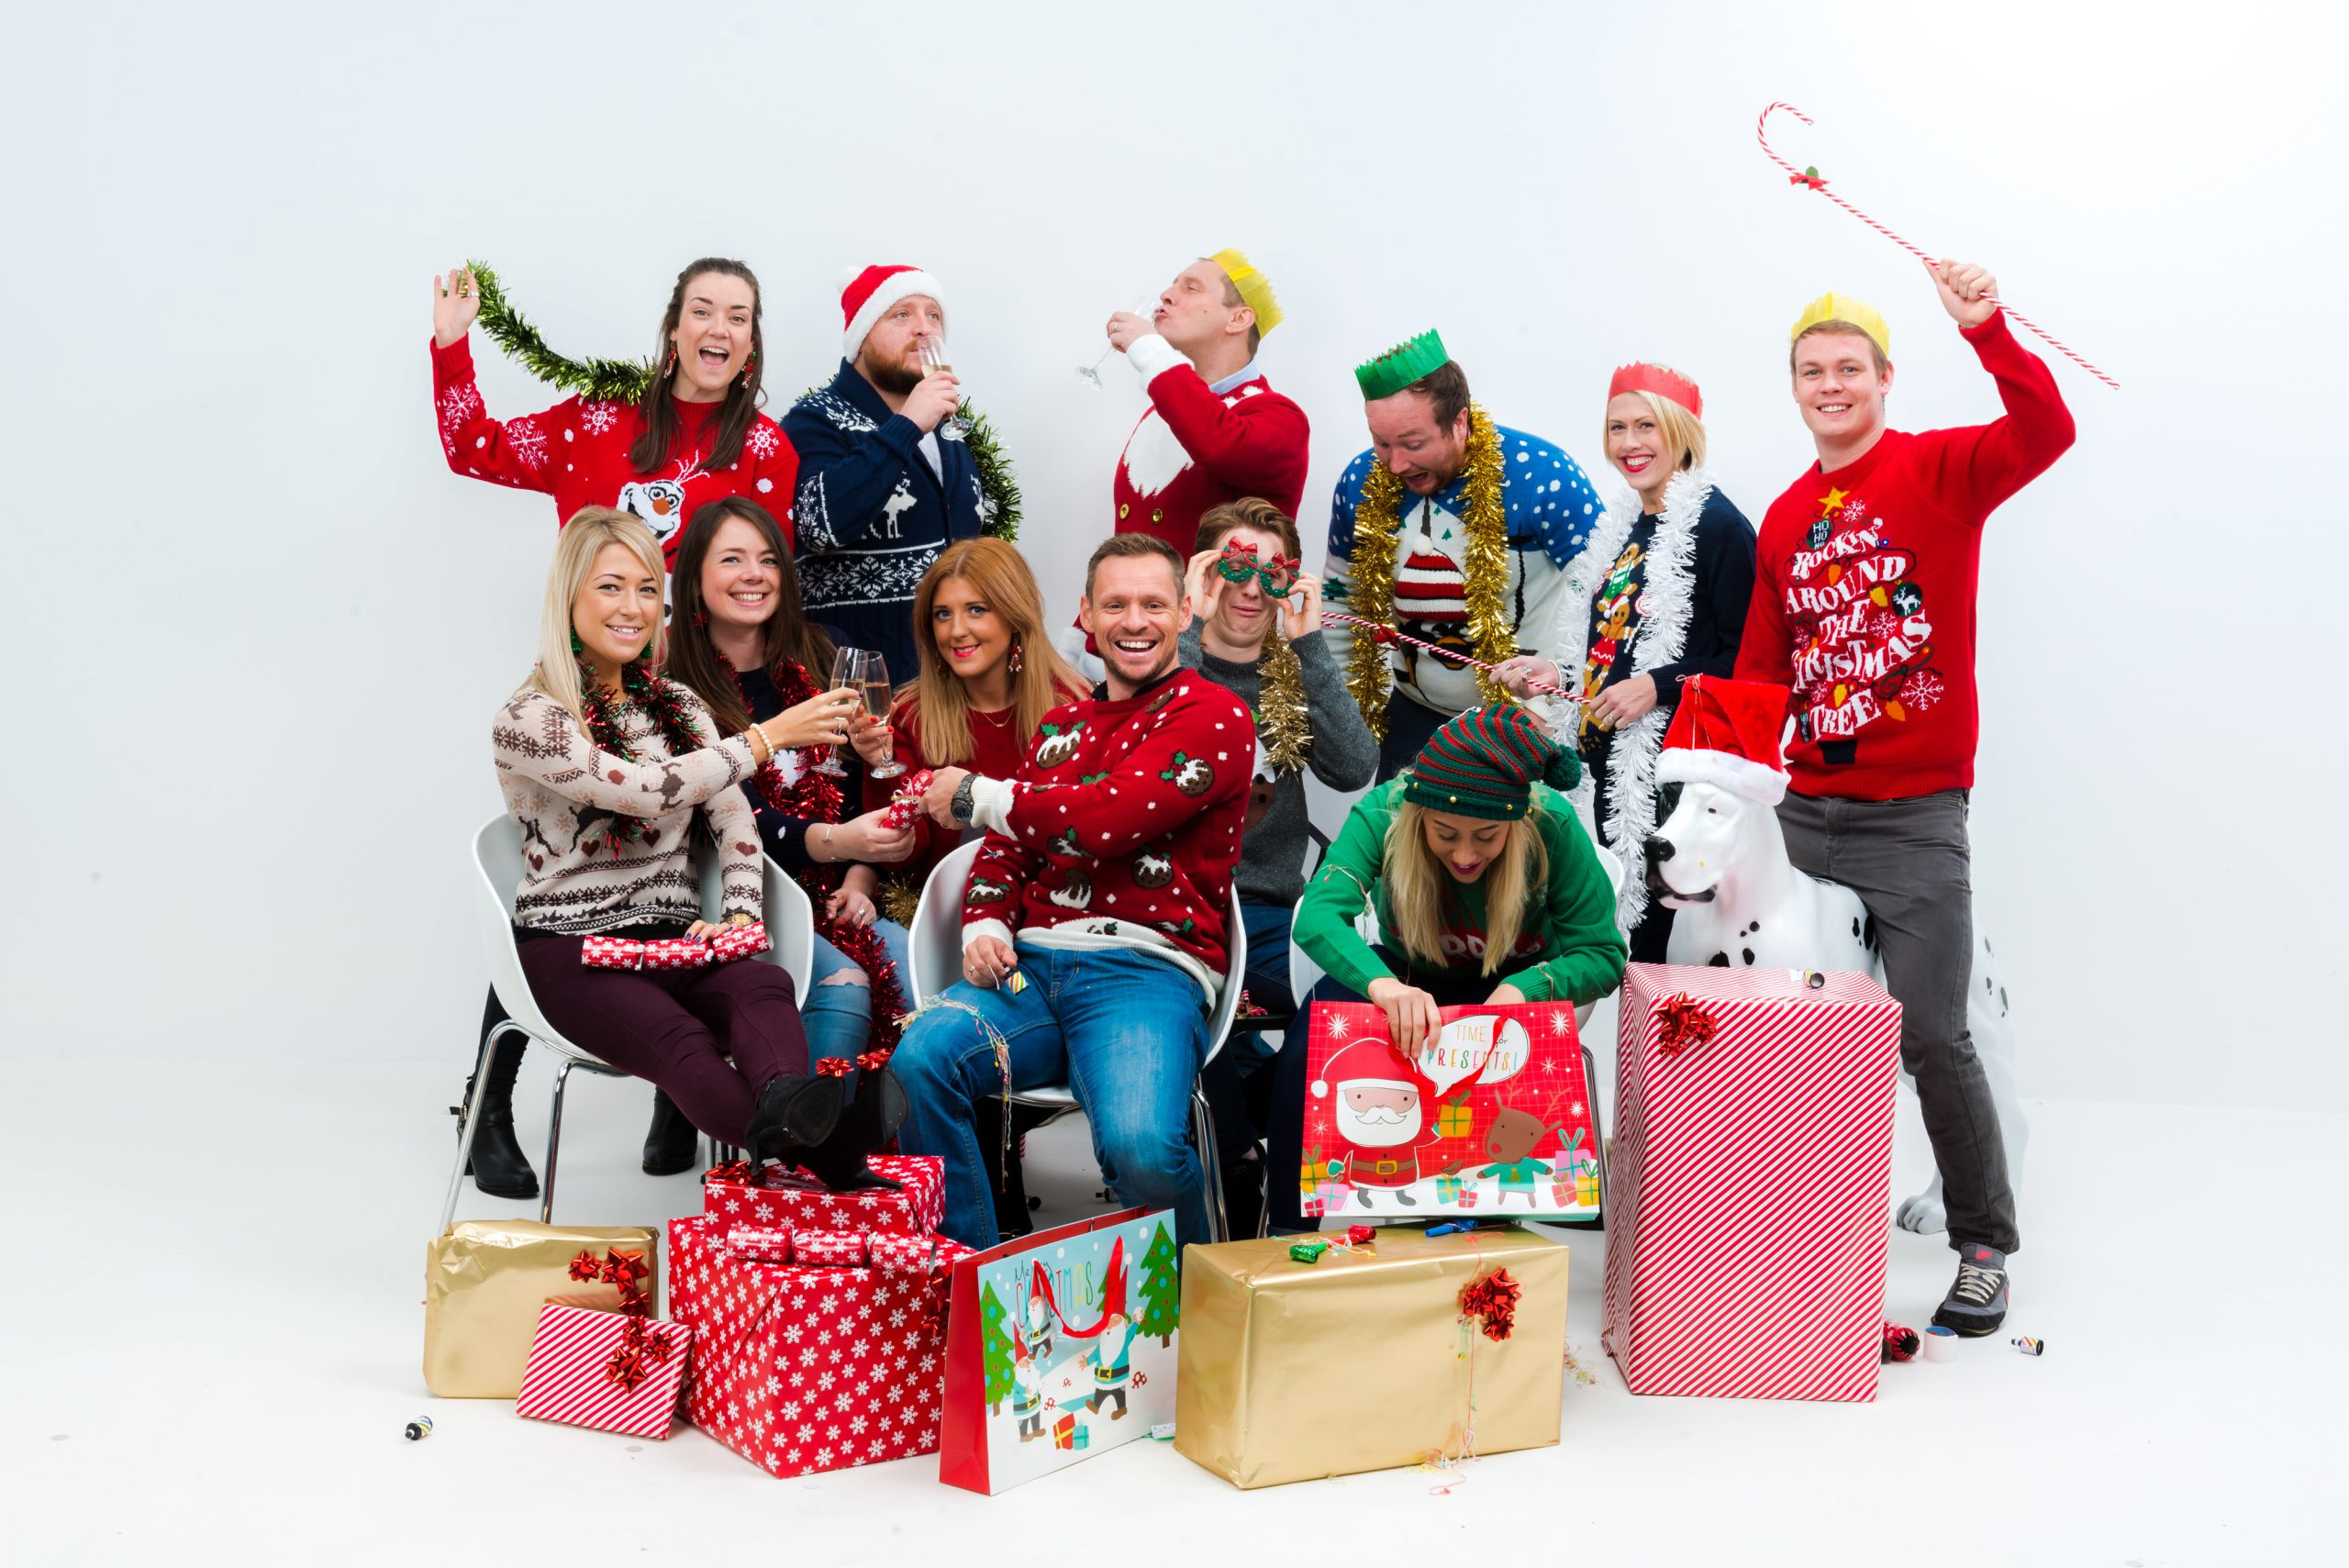 The staff of We Are Boutique looking joyus in christmas jumpers opening presents